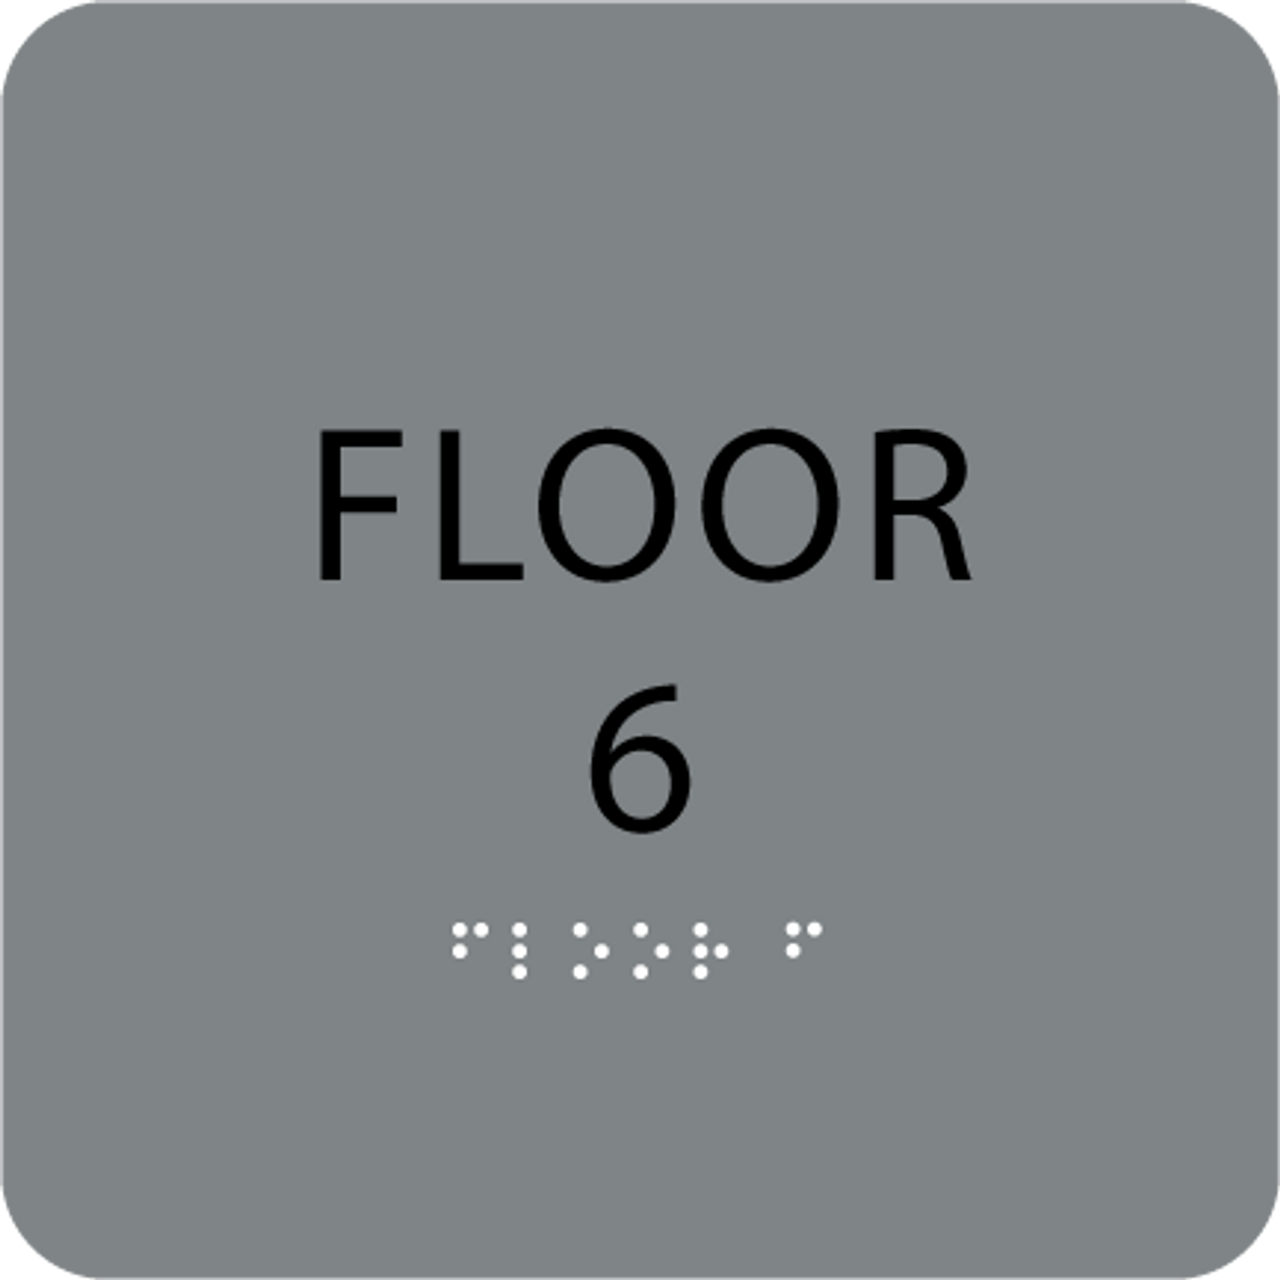 Grey Floor 6 Level Identification ADA Sign